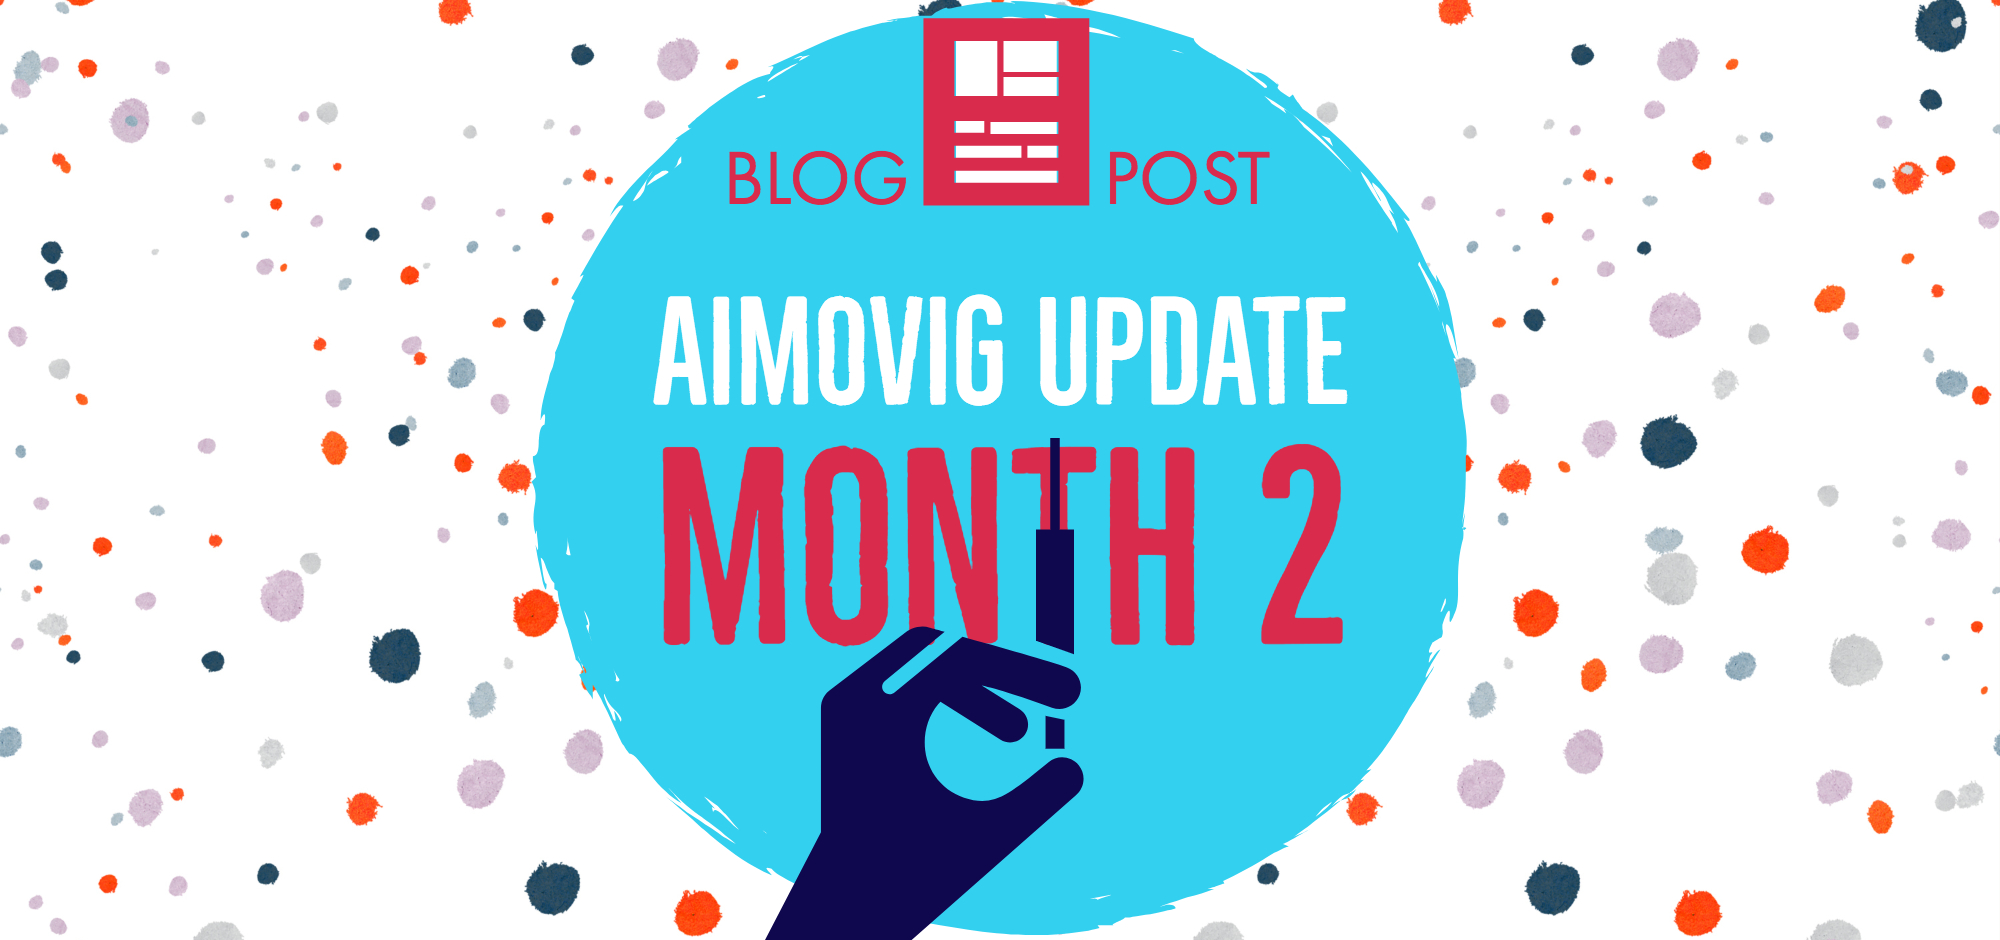 How the Aimovig Injection Is Working For My Migraine: A Weekly